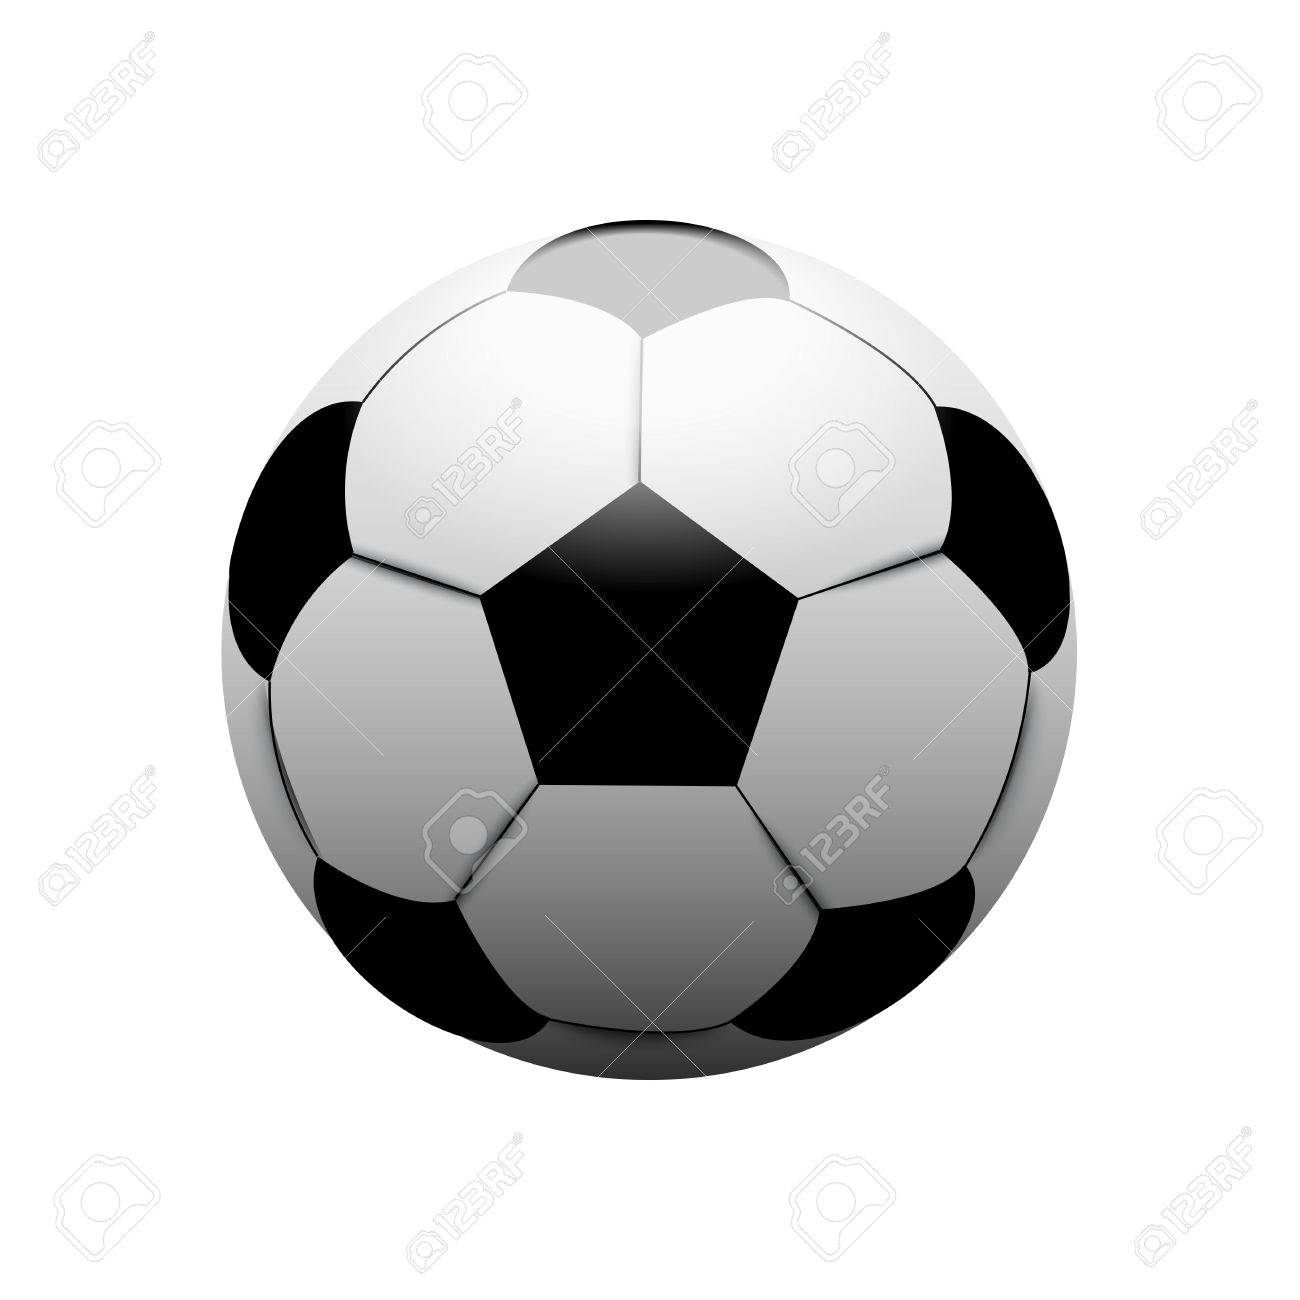 Football Soccer Ball Classic Royalty Free Cliparts 84d90a444a385